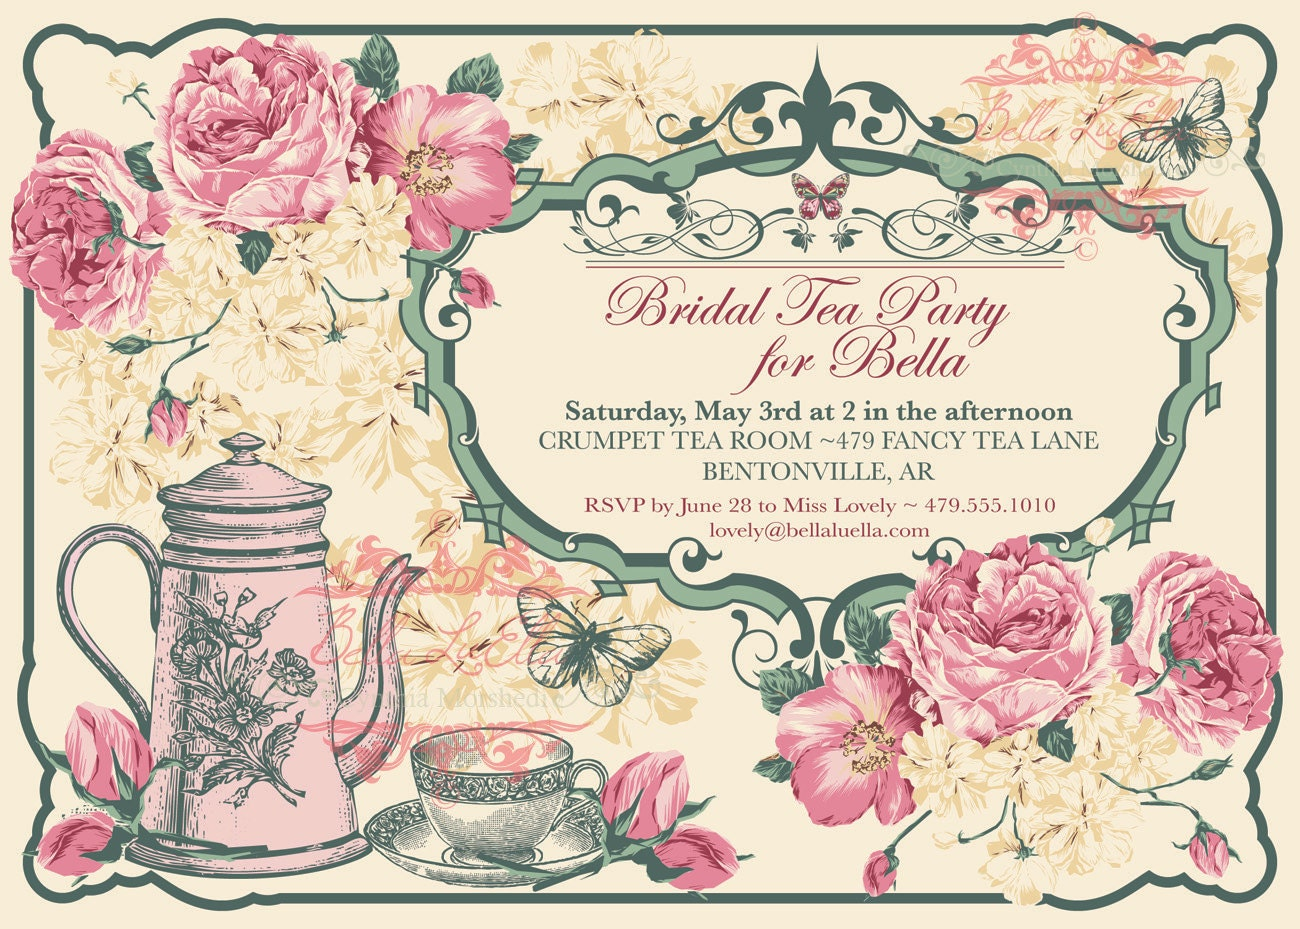 Tea Party Invitation Bridal Tea Party Garden Tea Party